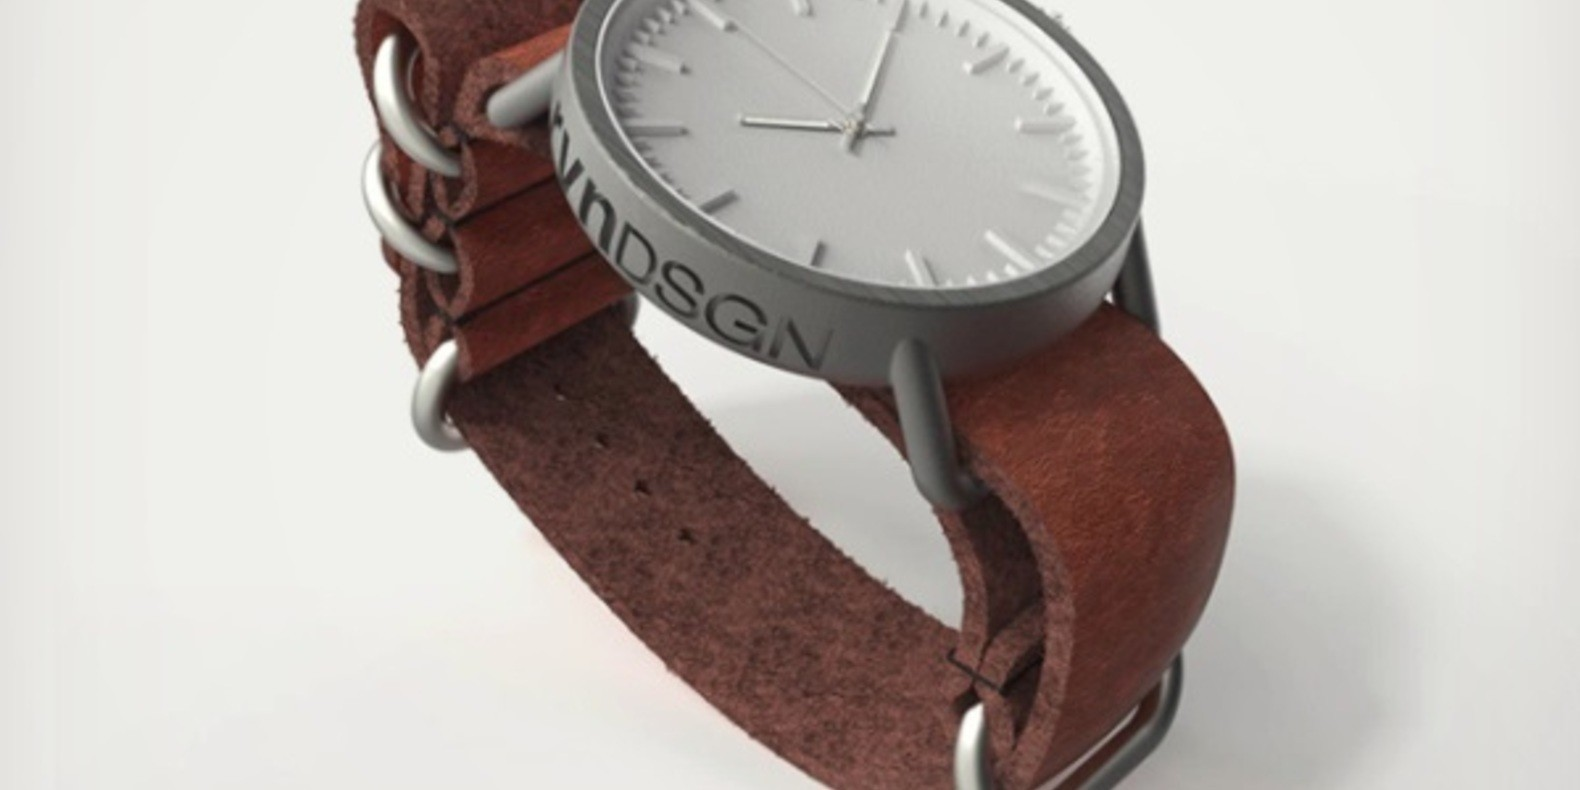 rvndsgn printed 3D printing watch montre impression fichier 3D cults cults3D 1